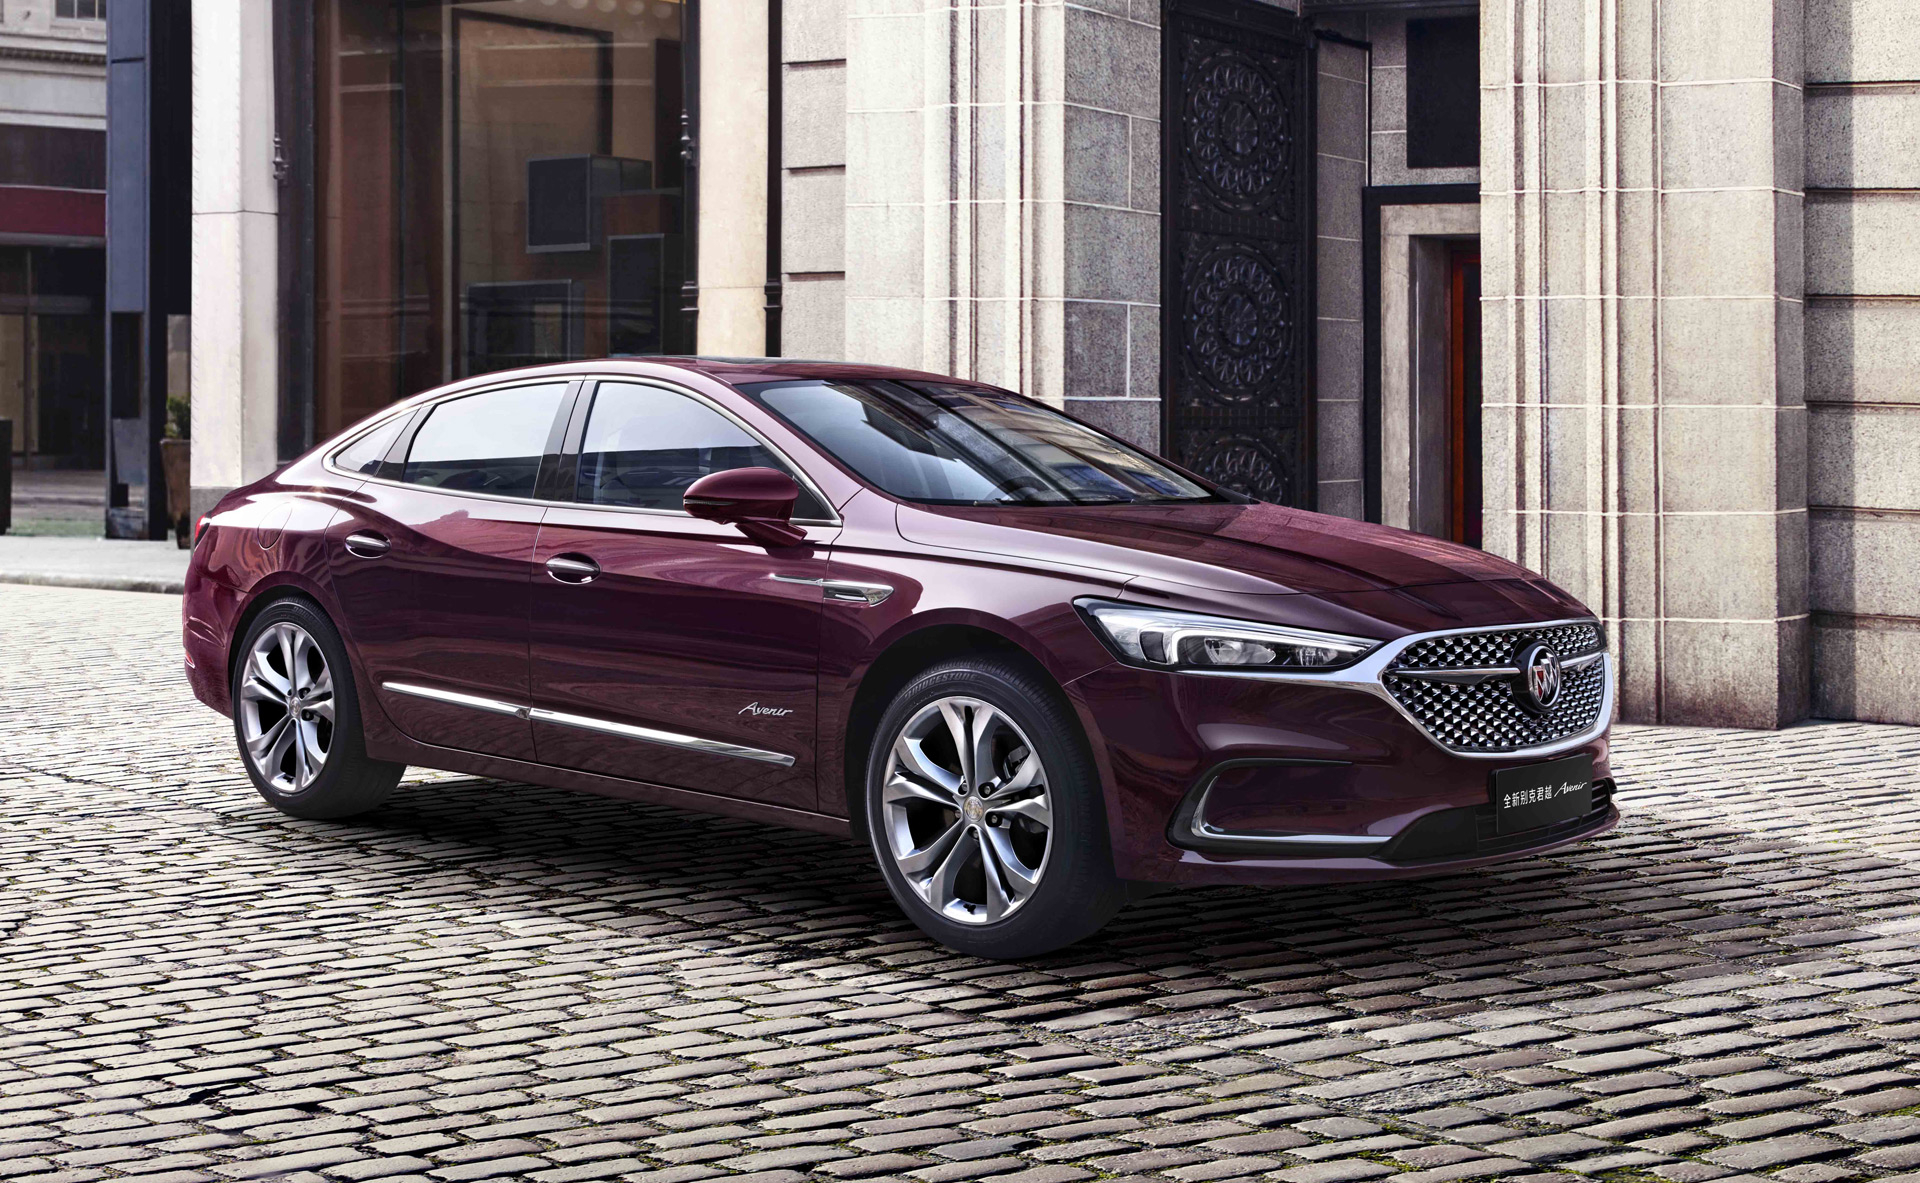 2020 Buick Lacrosse Made Handsome Just As It's Dropped In Us Where Is The New 2021 Buick Lacrosse Made